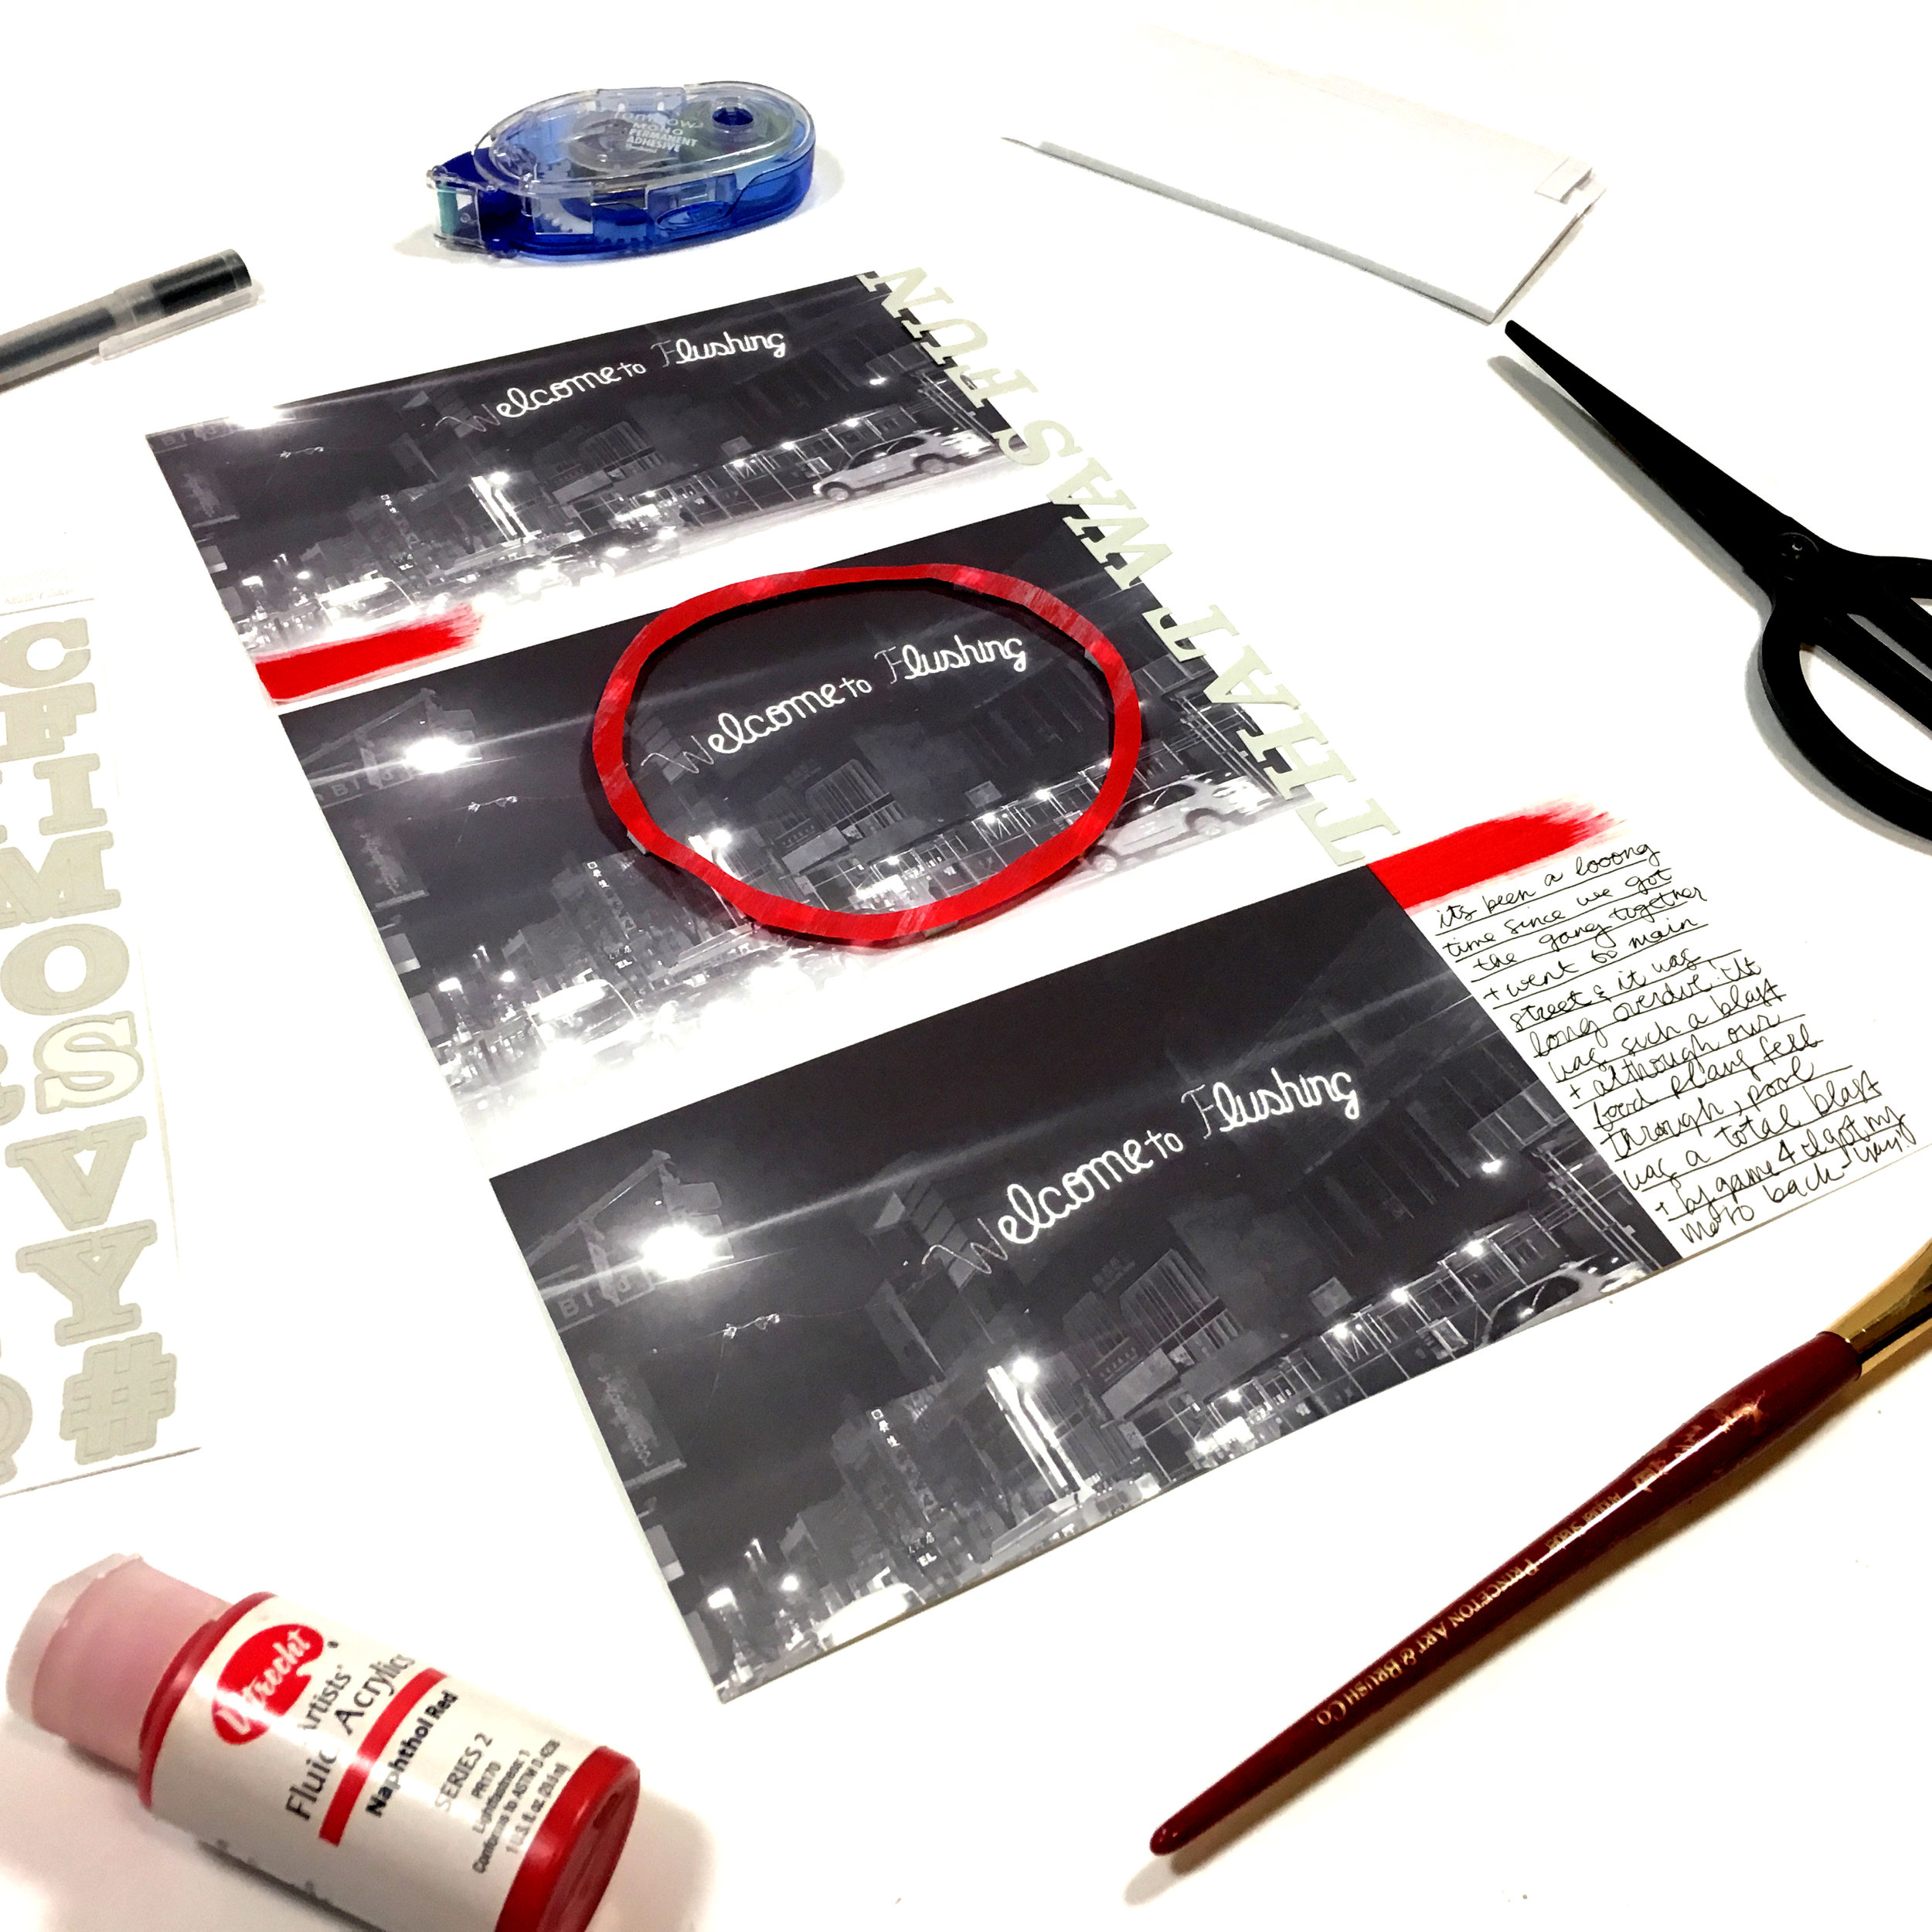 'That Was Fun' Scrapbook Layout | The Paper Curator